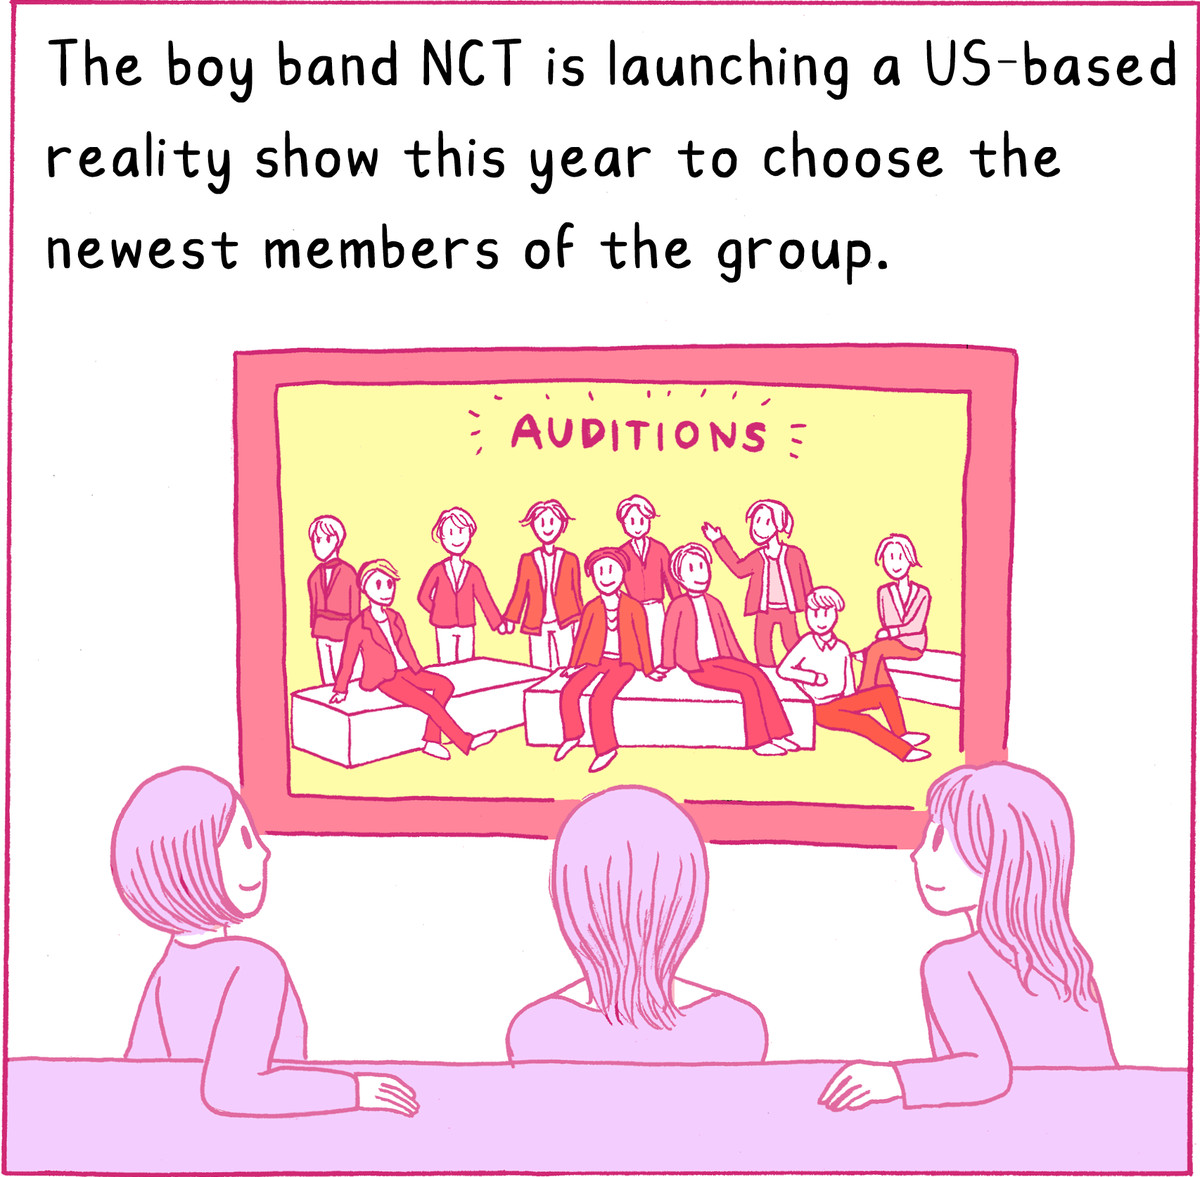 The boy band NCT is launching a US-based reality show to choose the newest members of their group.